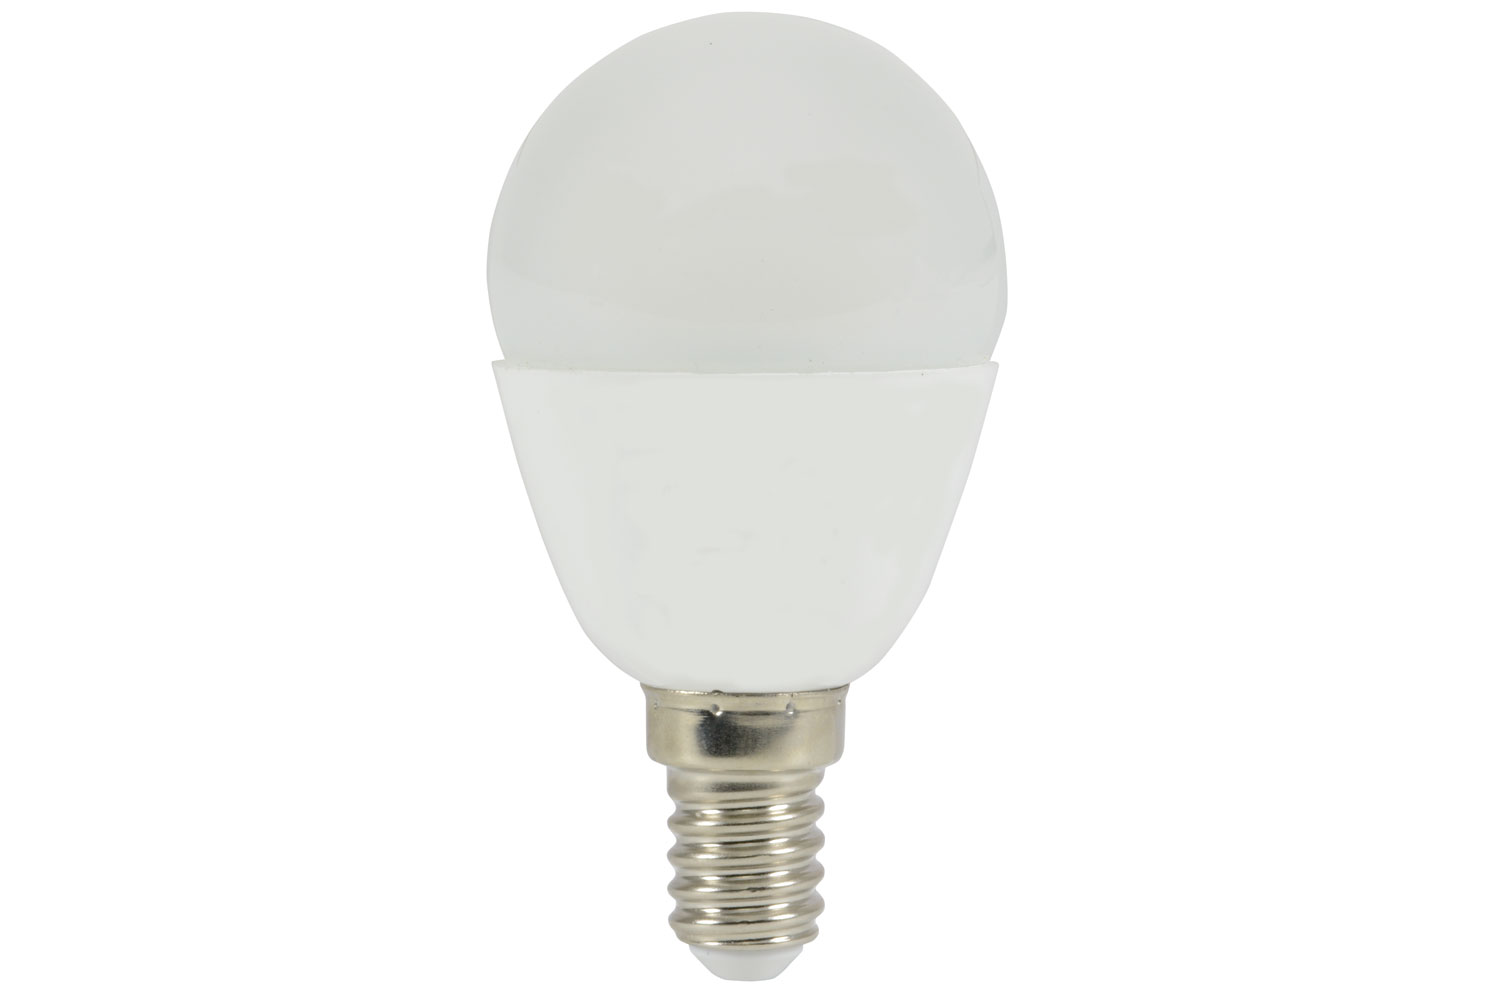 lyyt Golfball Lamp 6W LED E14 Dimmable - WW